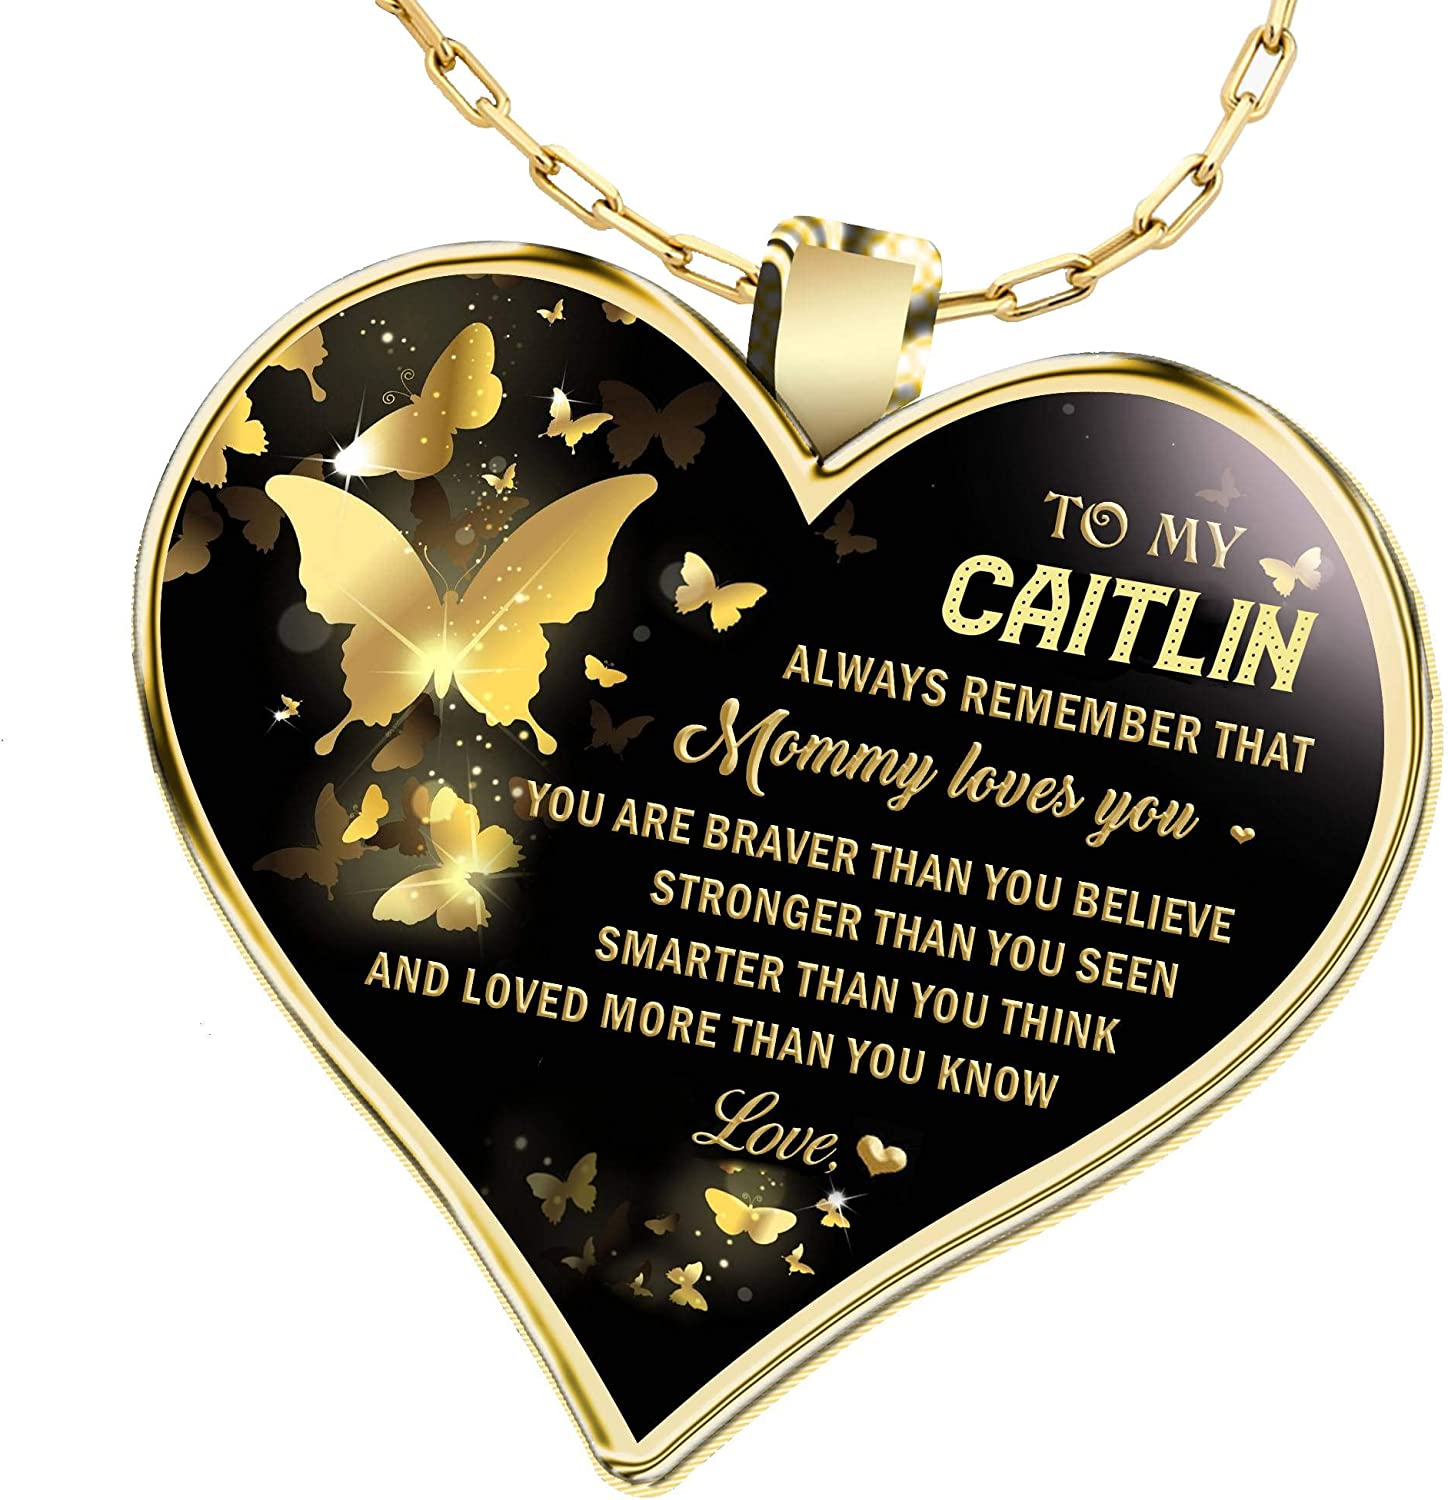 Houston Mall Gifts Necklace Name All stores are sold for Wife to Caitlin Always My That Remember